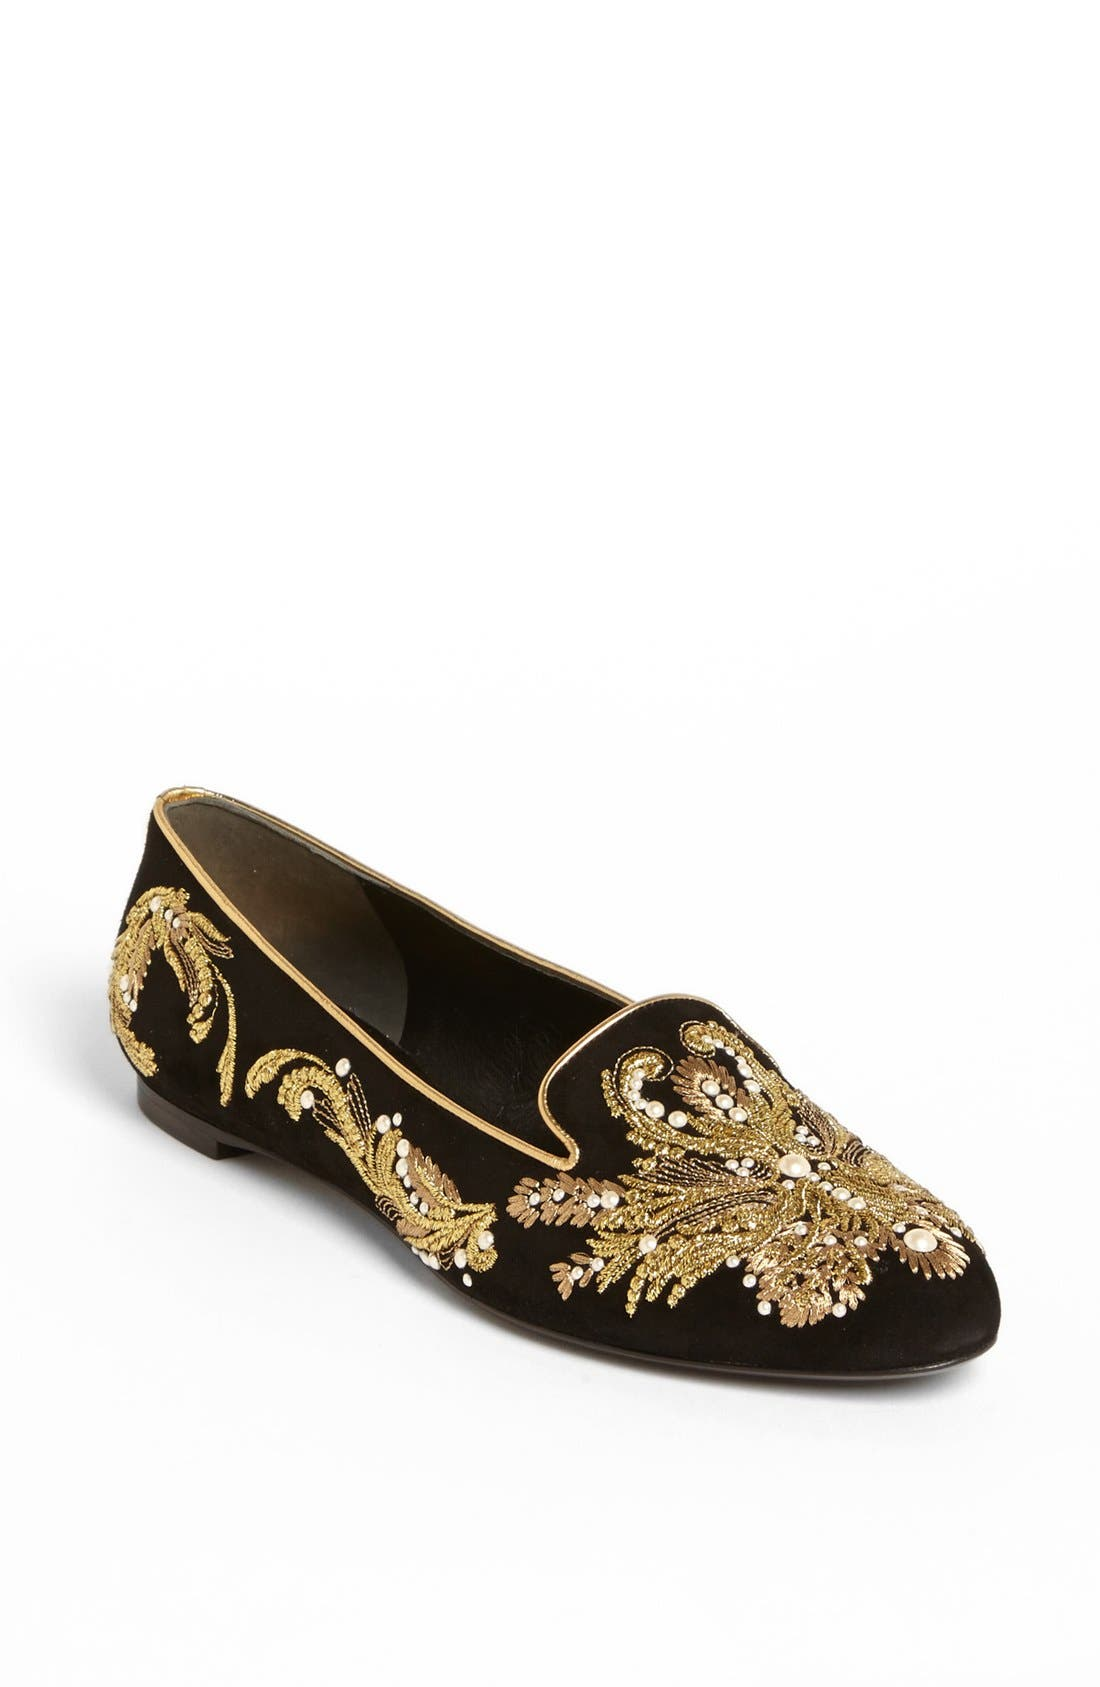 Main Image - Alexander McQueen Embroidered Flat